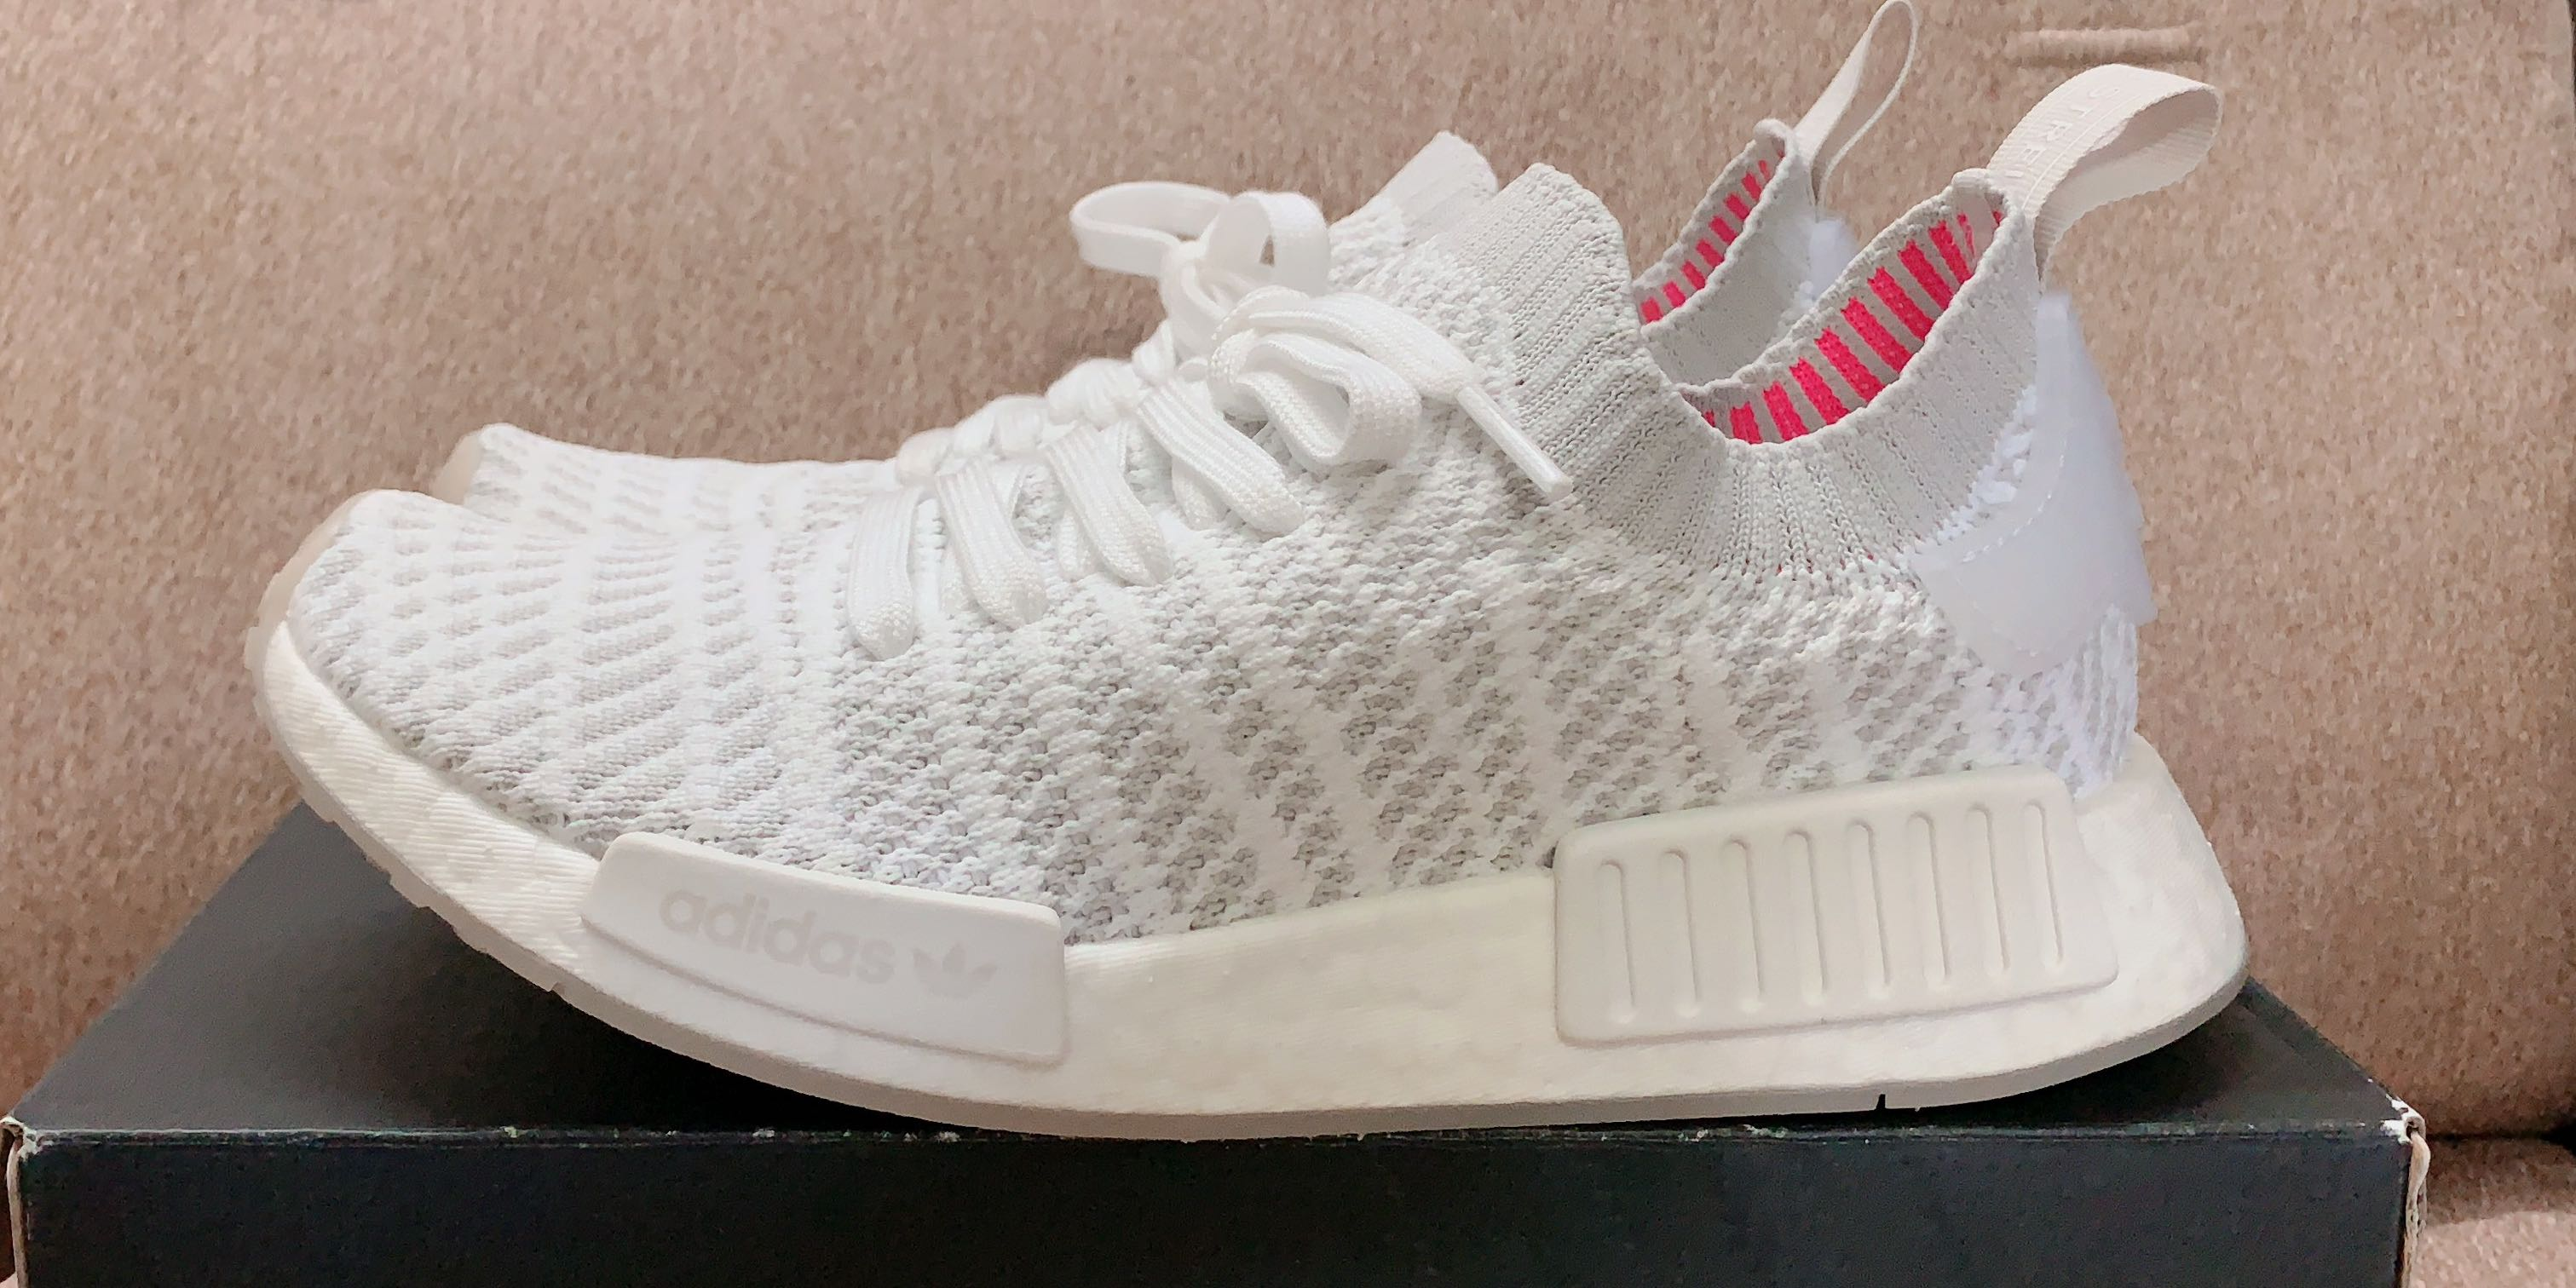 quality design 45b2f 3b6c4 Adidas Originals NMD R1 STLT PK, Cloud White , Women s Fashion, Shoes,  Sneakers on Carousell